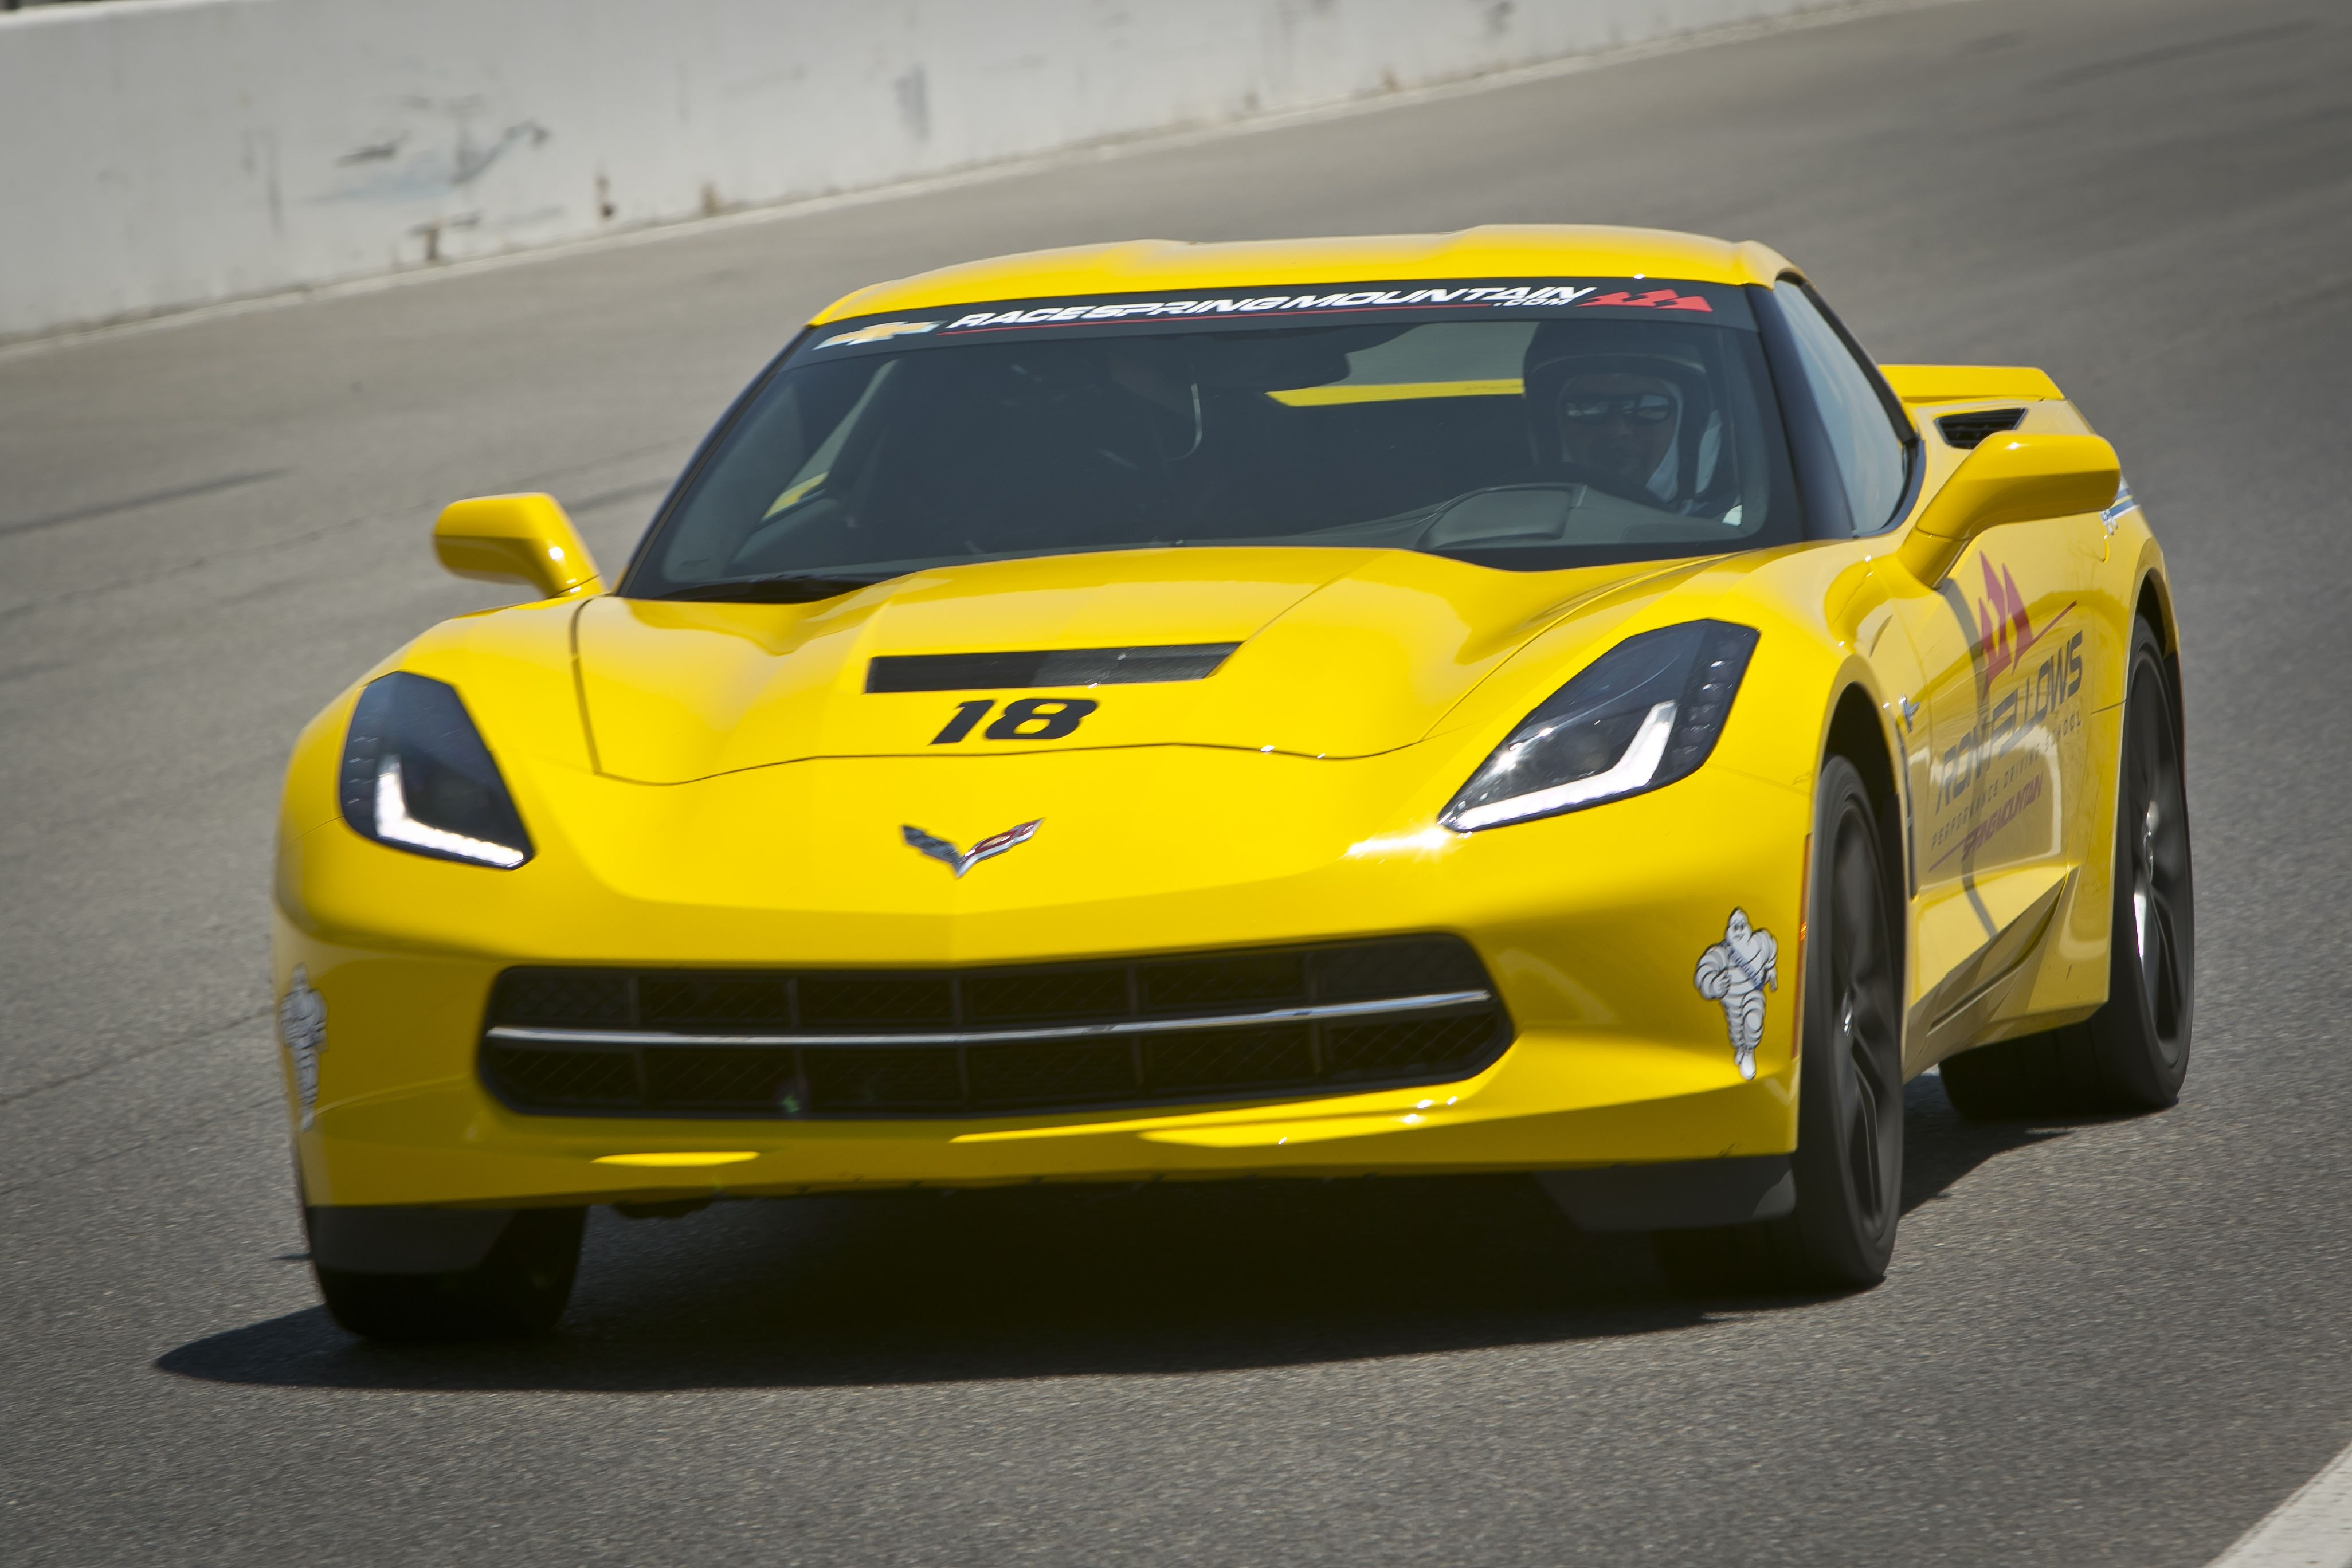 Looking for an exceptional driving or racing experience in a high-performance sports car? Spring Mountain is your destination. As home to the exclusive Ron Fellows Corvette performance driving school, the new Cadillac V-Performance Academy as well as racing schools and more, we have something for every driver, from entry-level to expert.